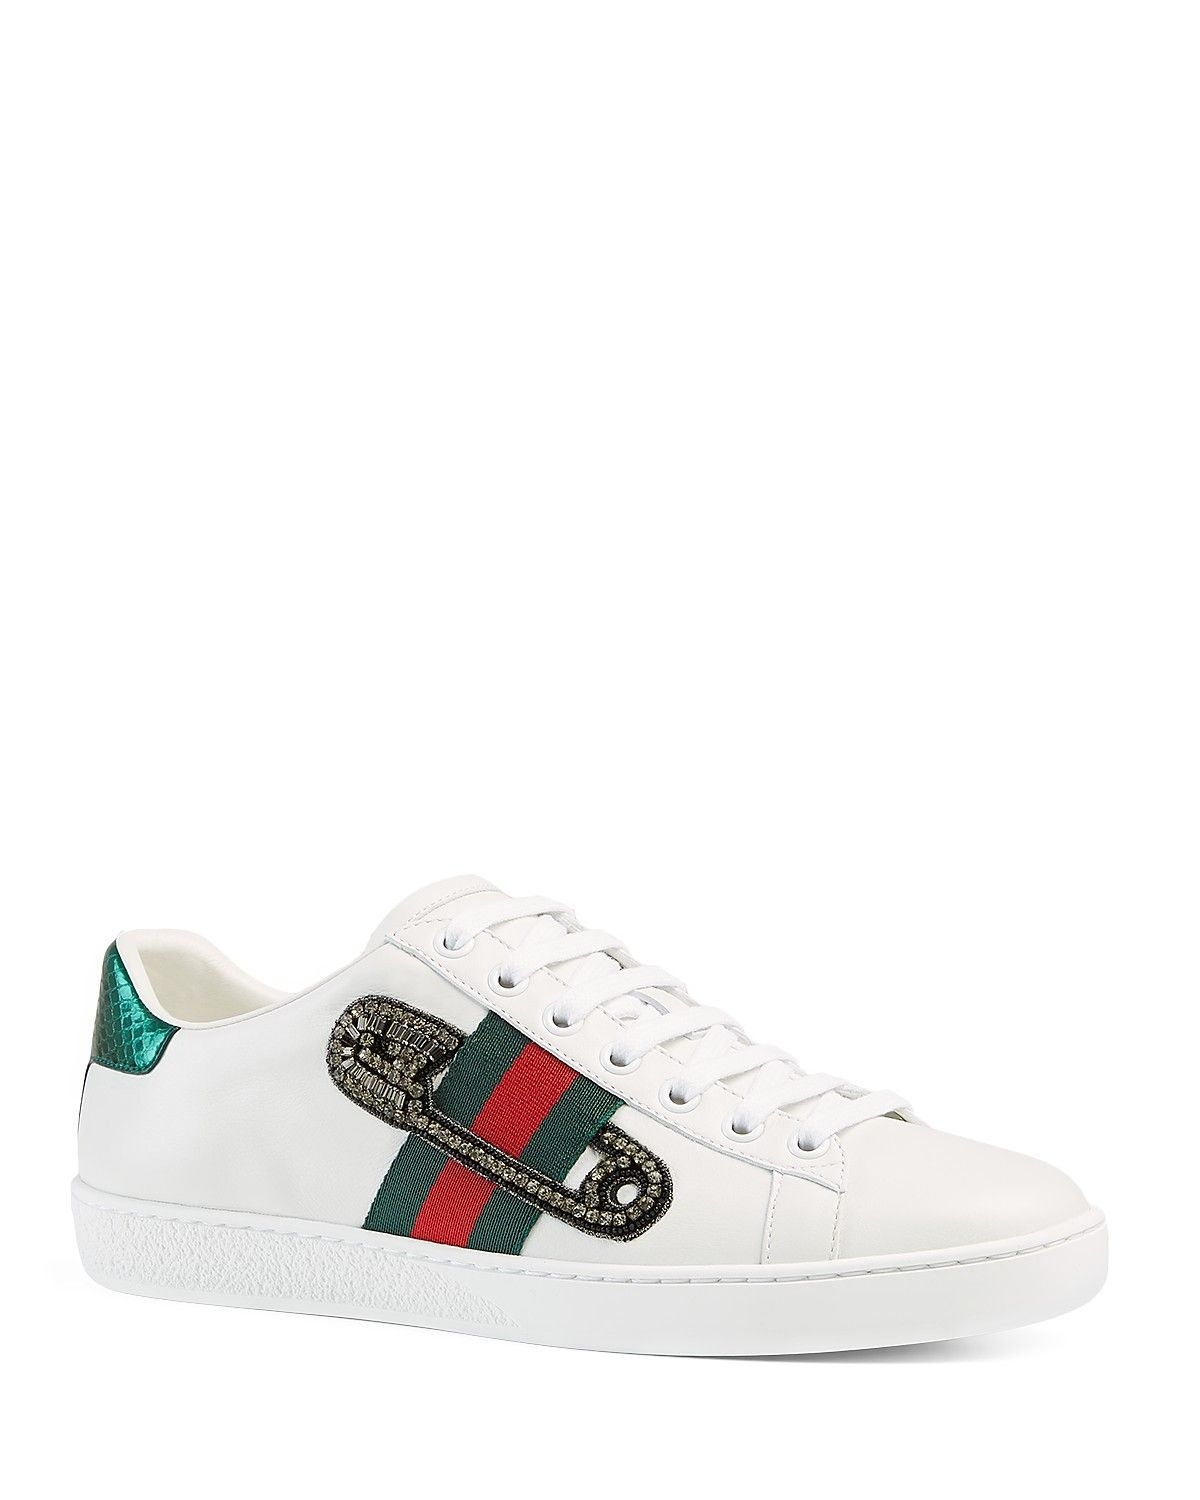 1f5a46a35 Gucci New Ace Safety Pin Lace Up Low Top Sneakers | trainers | Gucci ...